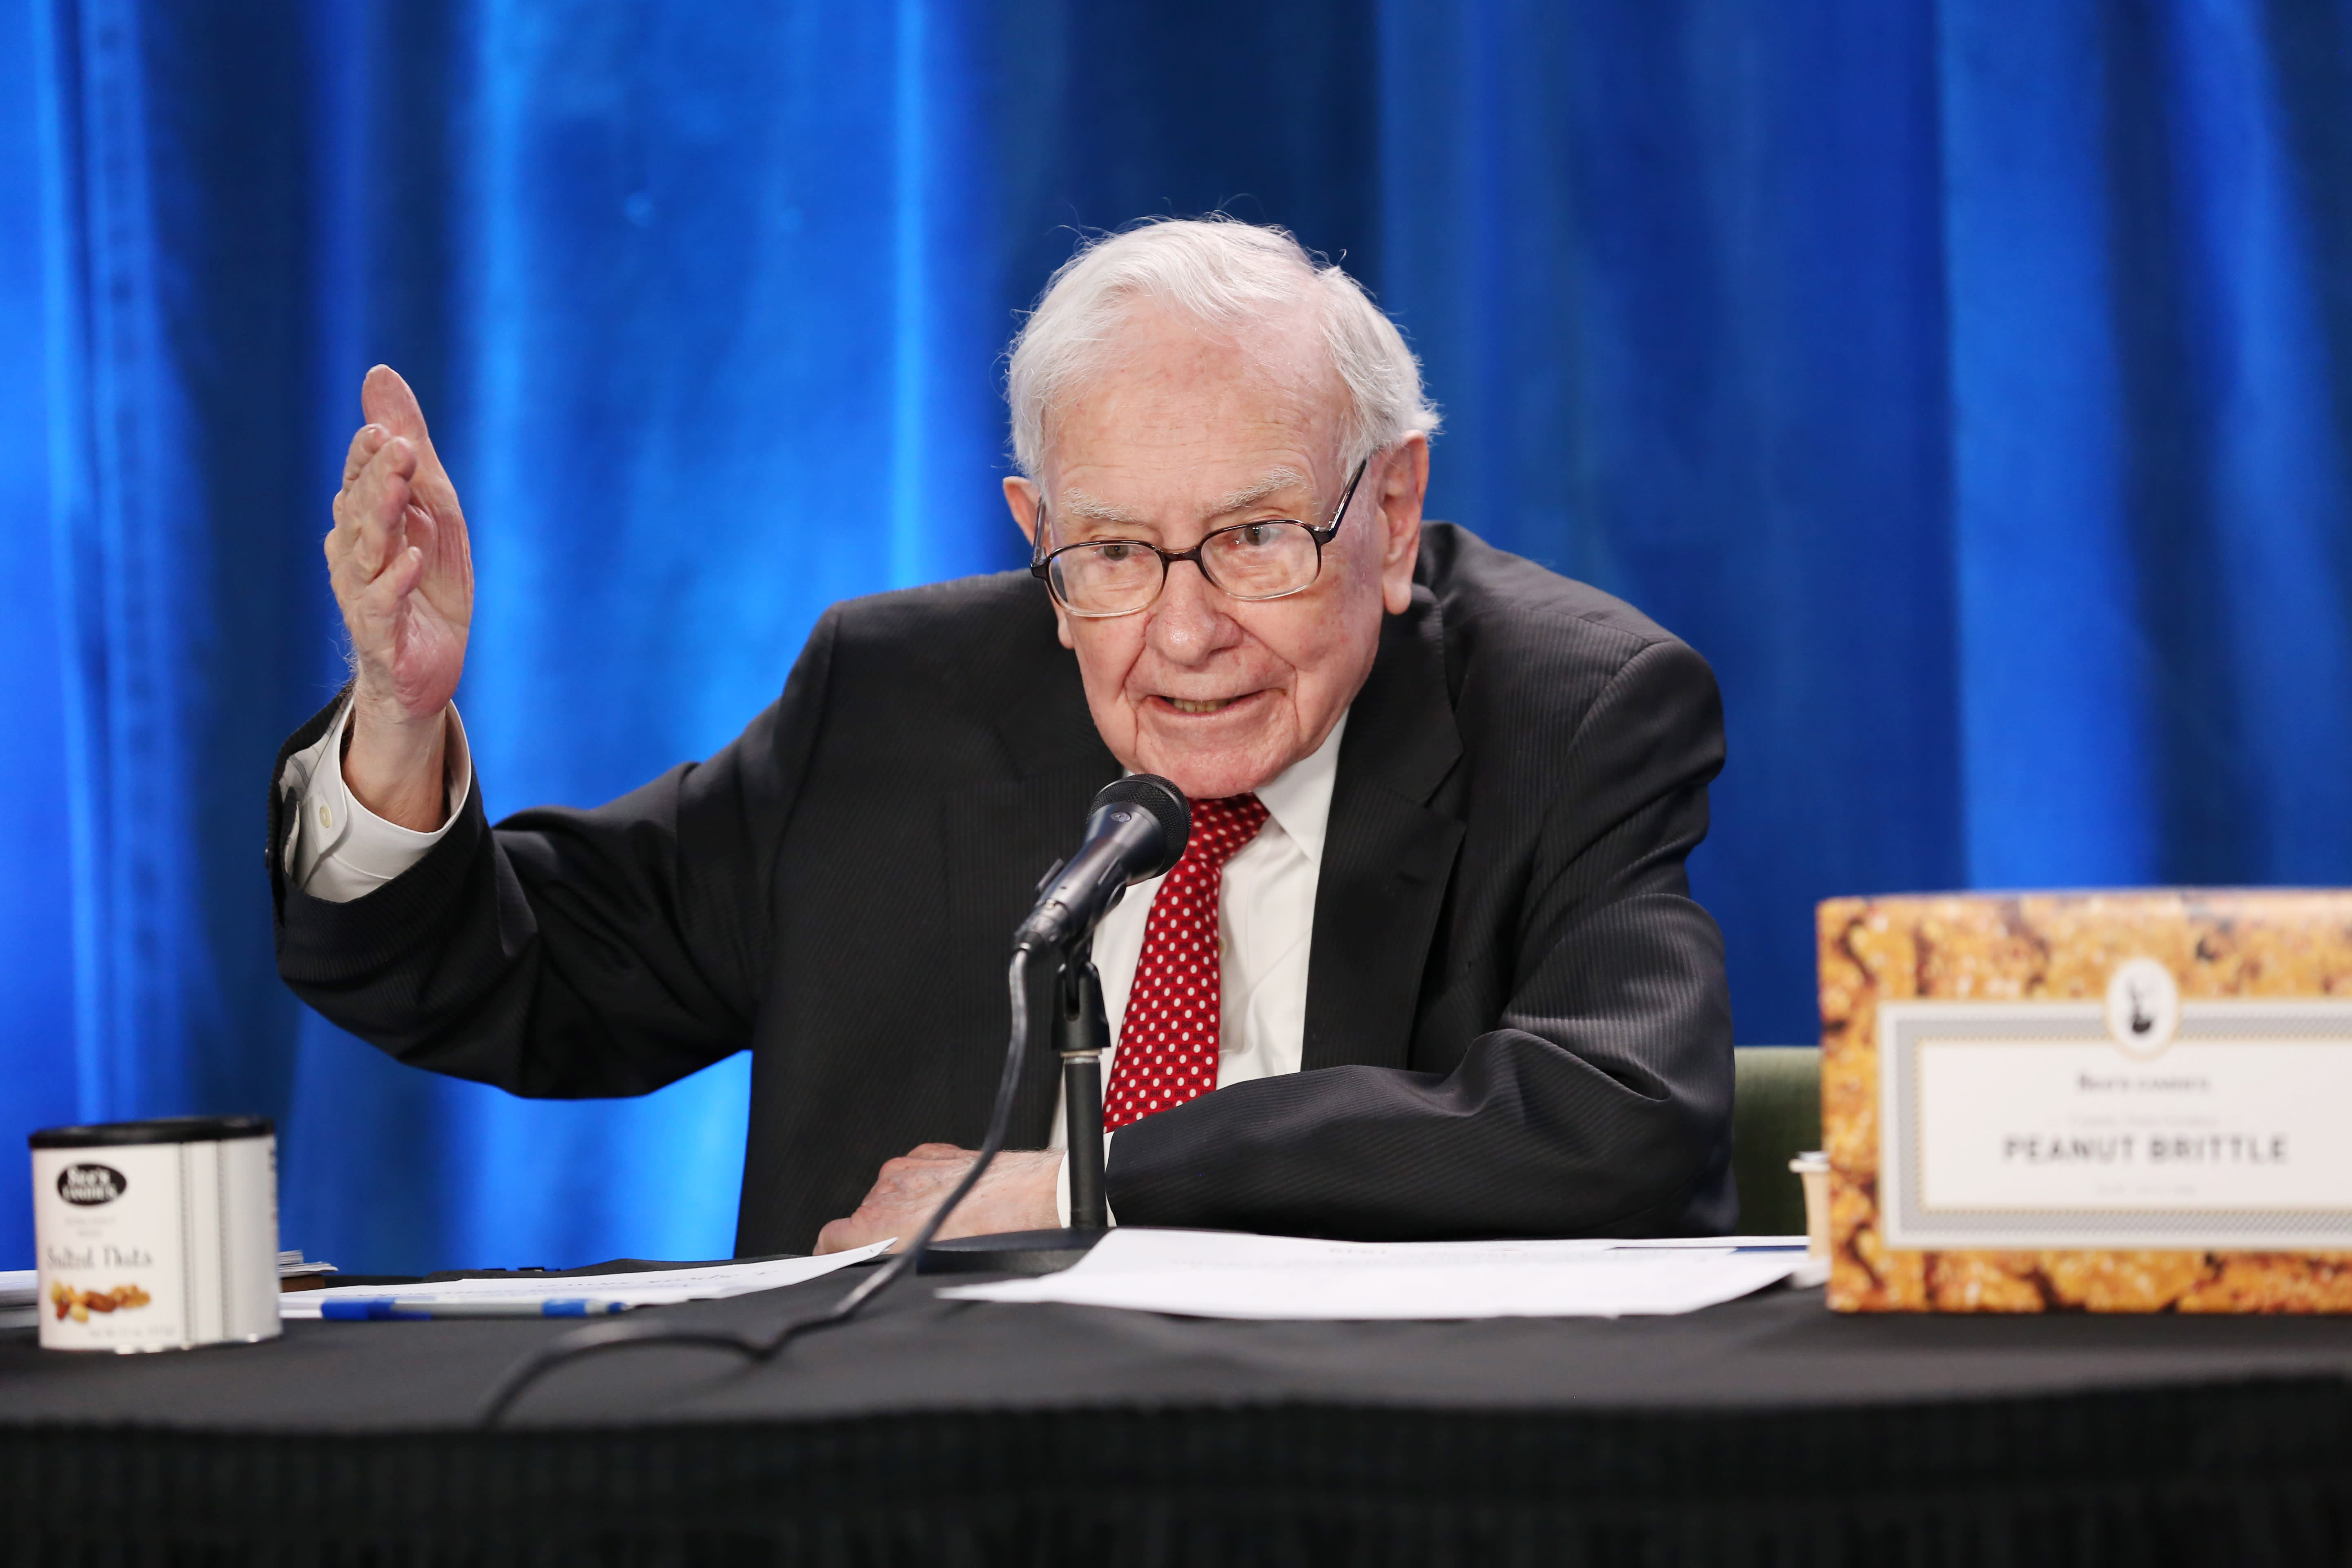 This is the special lesson Warren Buffett gave to new equity investors at his annual meeting.